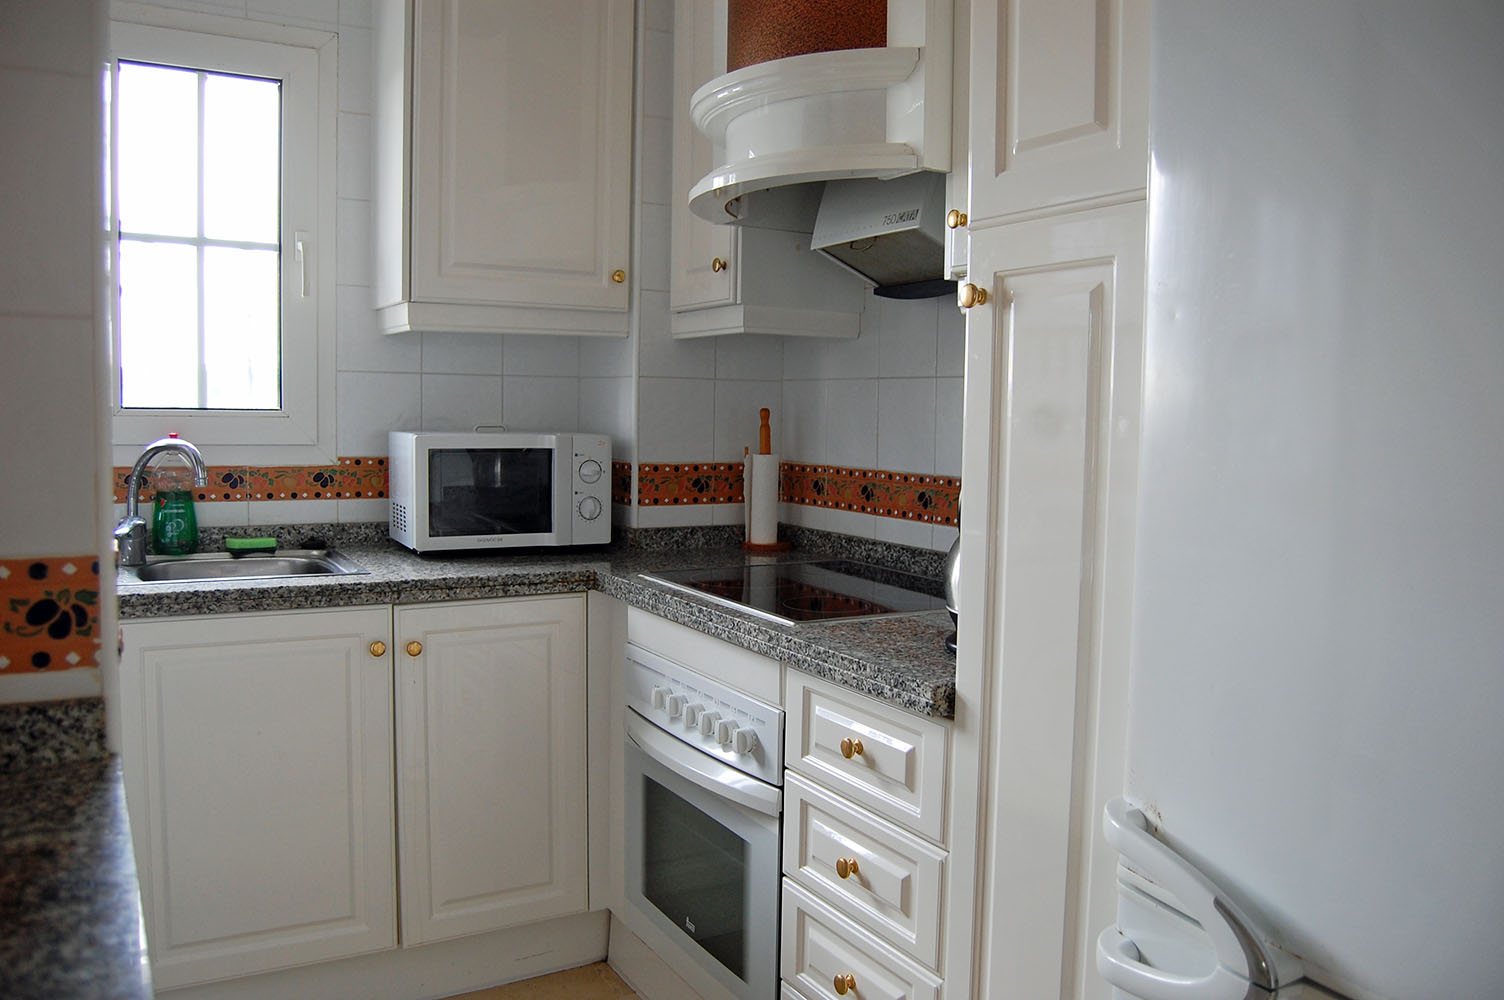 ITSH Property Fully fitted kitchen 6